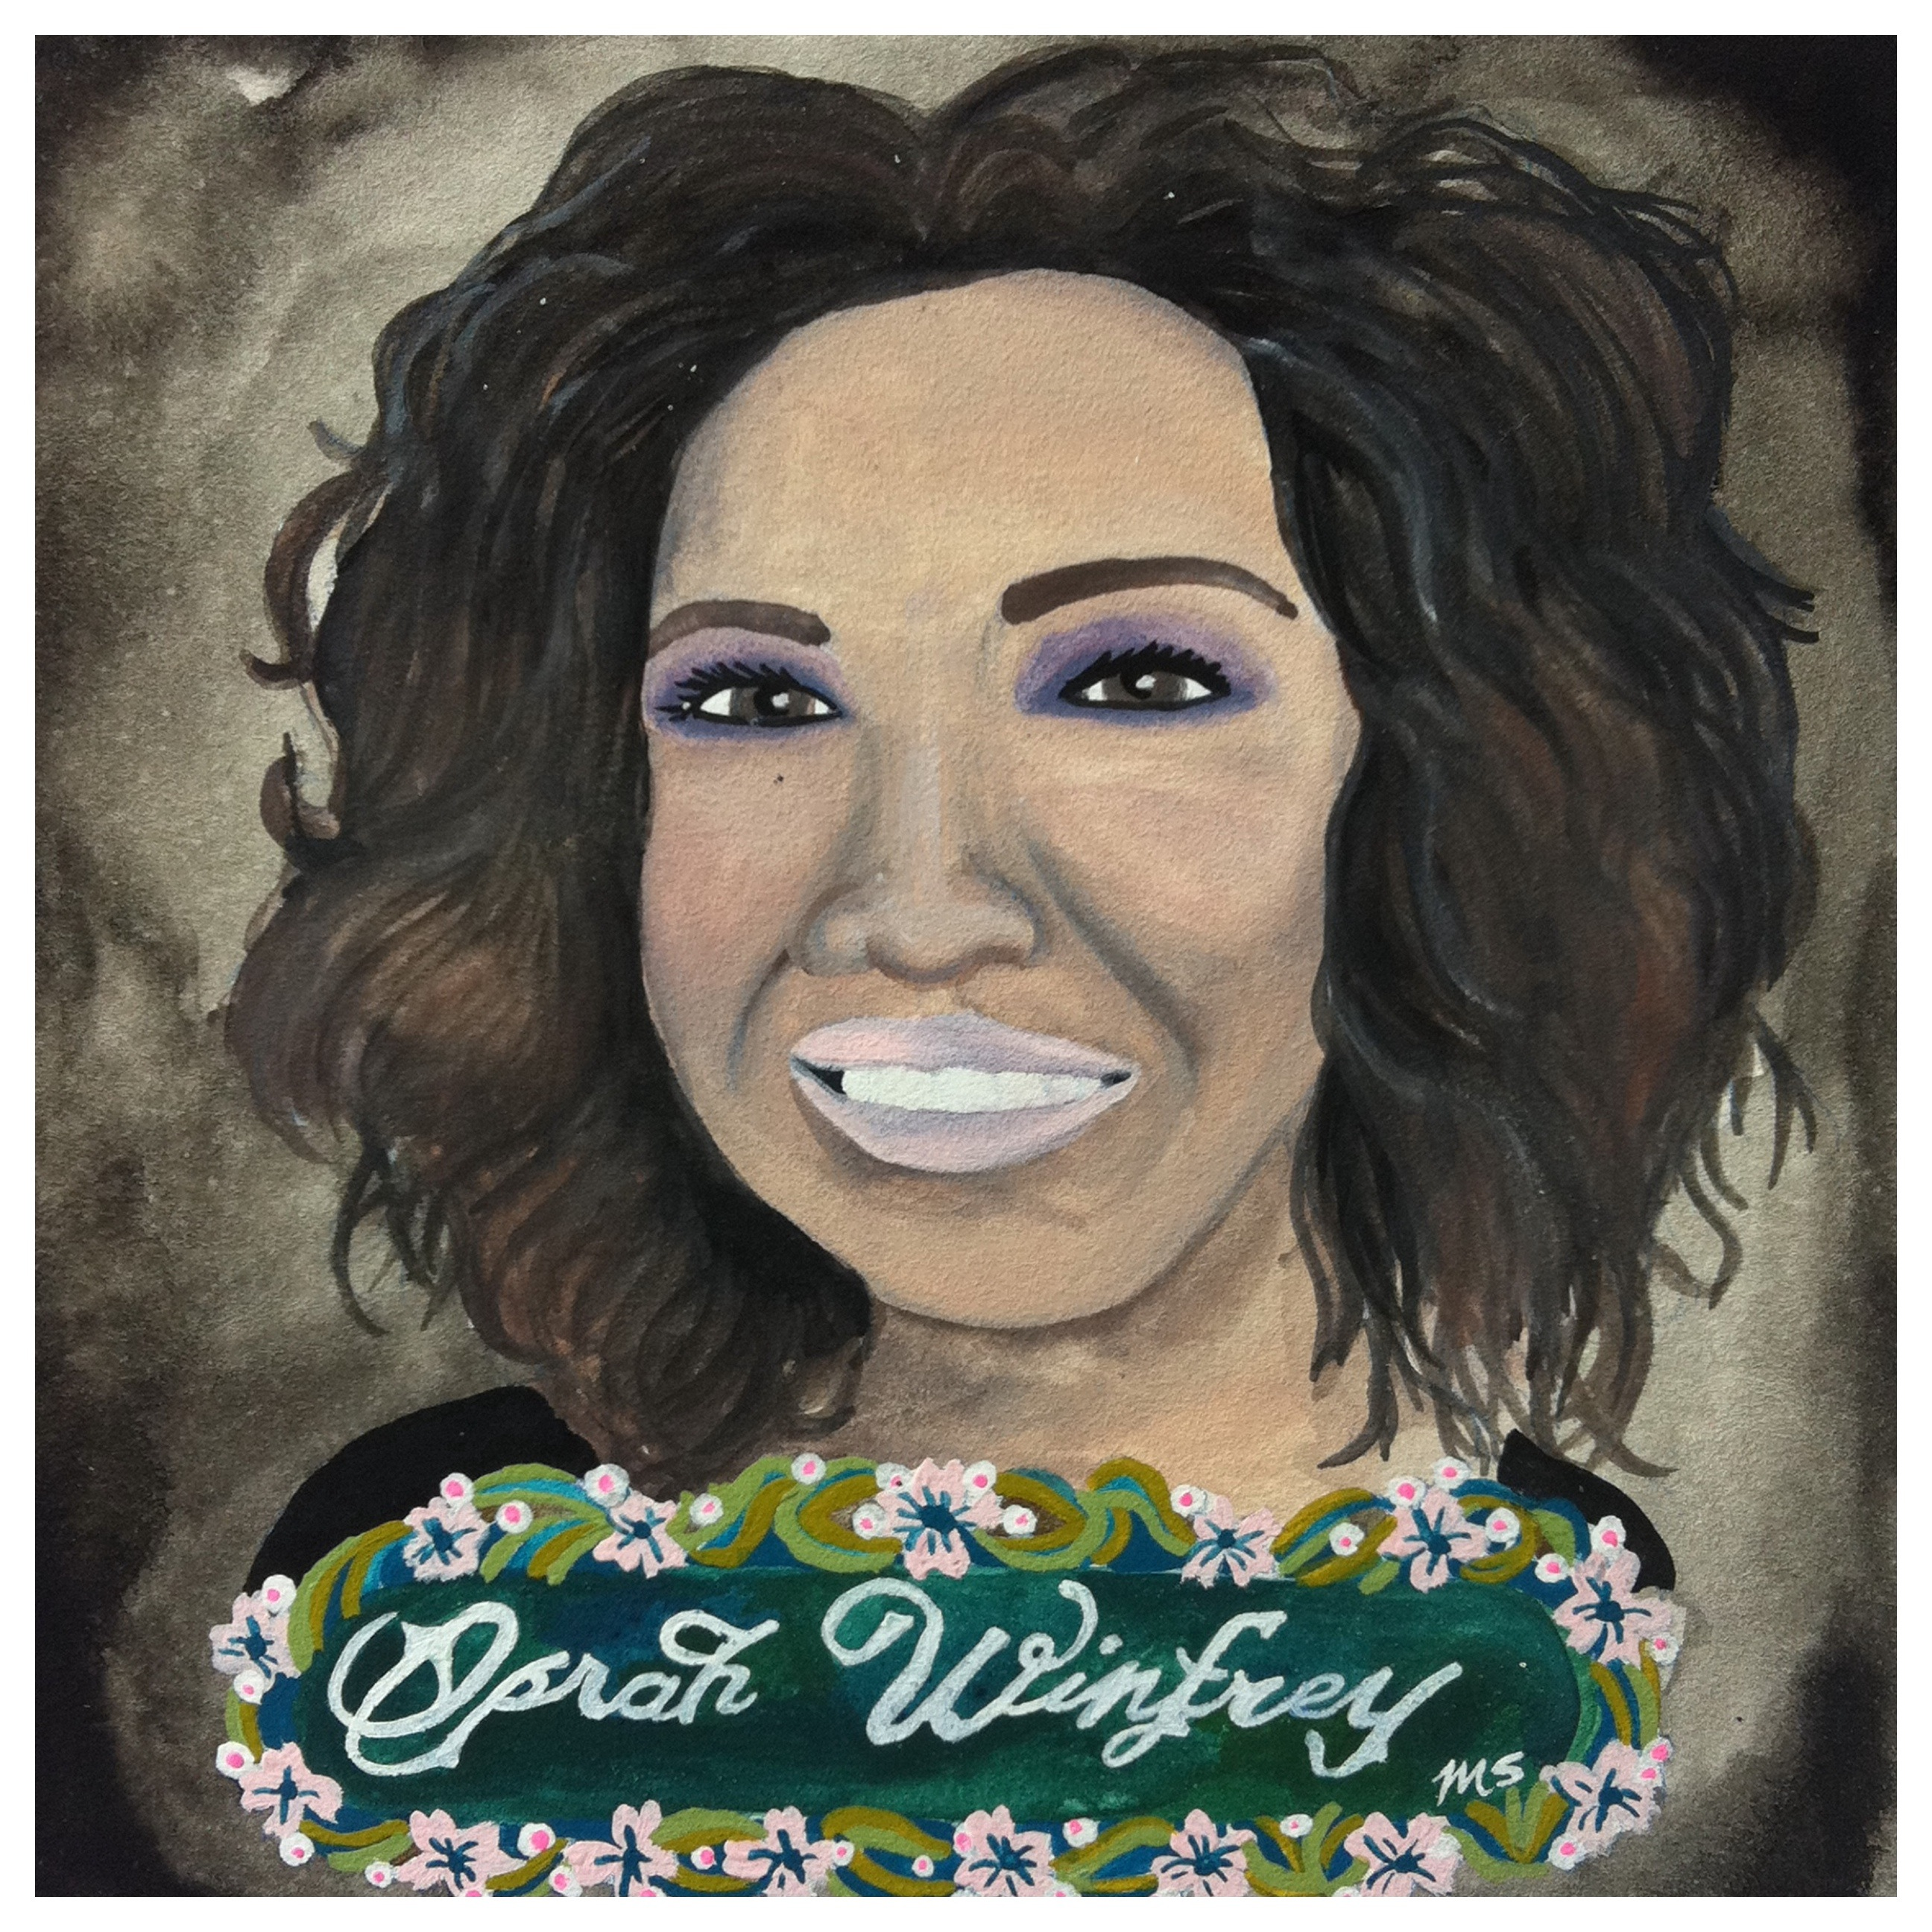 100 Southerners portraits by Lydia Walls: Oprah Winfrey